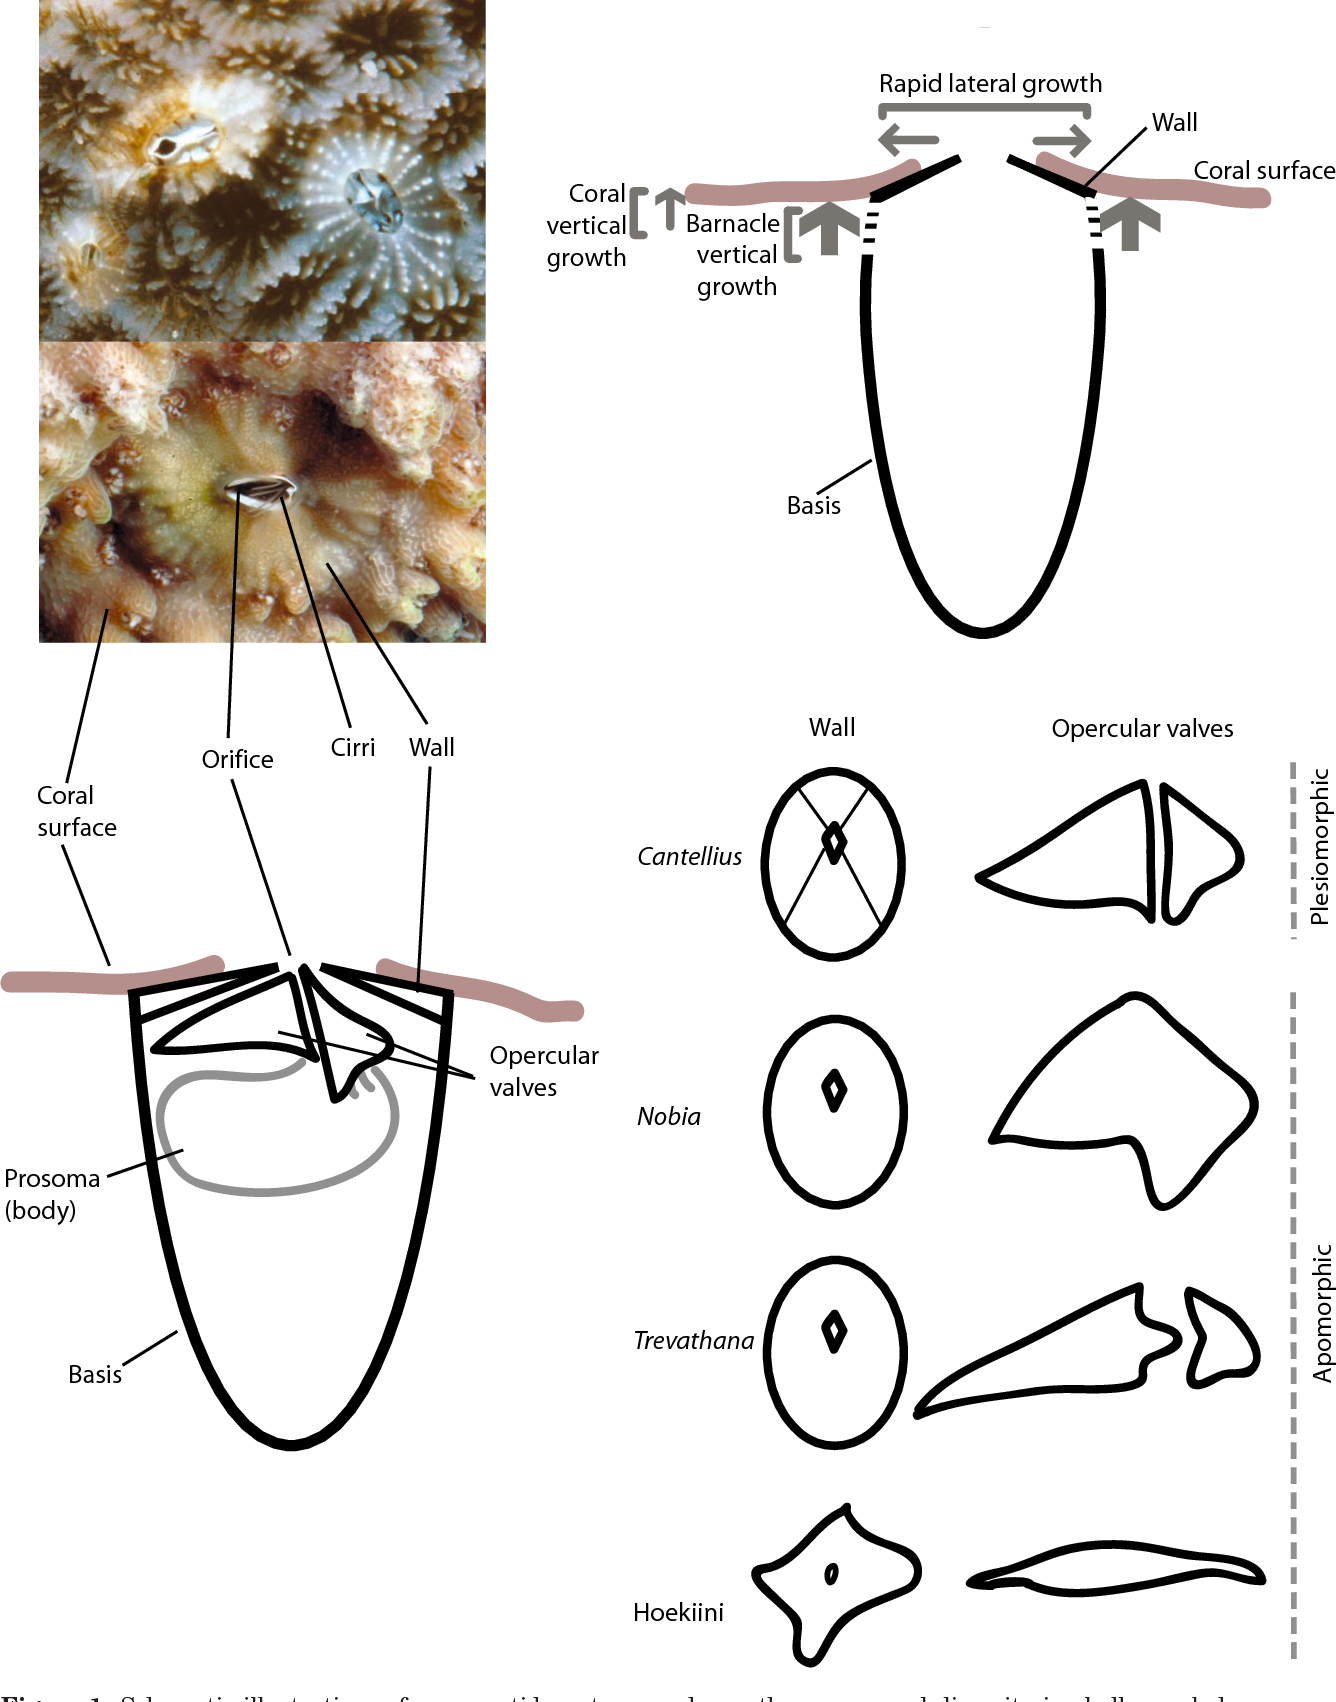 Figure 1 From Phylogenetics And Morphological Evolution Of Coral